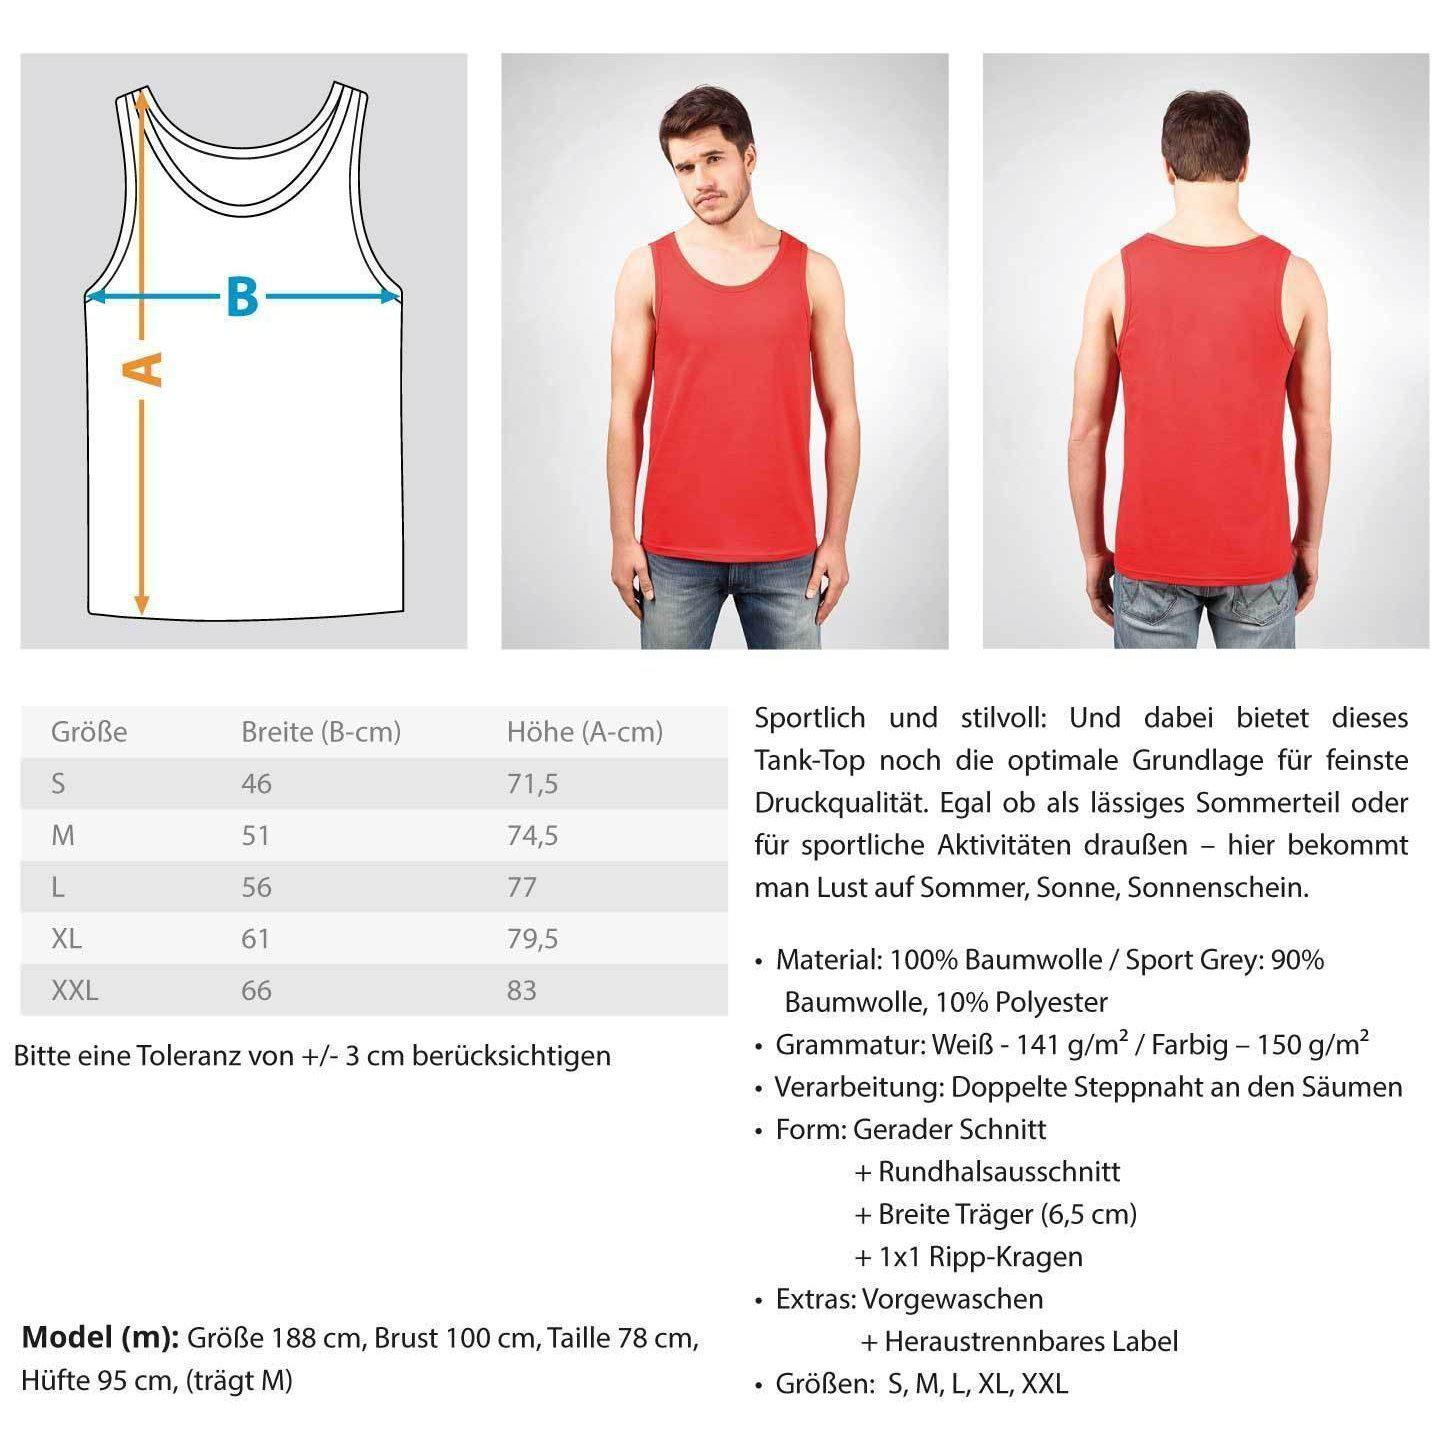 Rave is my Cardio! Rave On!® Shirt - Herren Tanktop Herren Tank-Top - Rave On!® der Club & Techno Szene Shop für Coole Junge Mode Streetwear Style & Fashion Outfits + Sexy Festival 420 Stuff